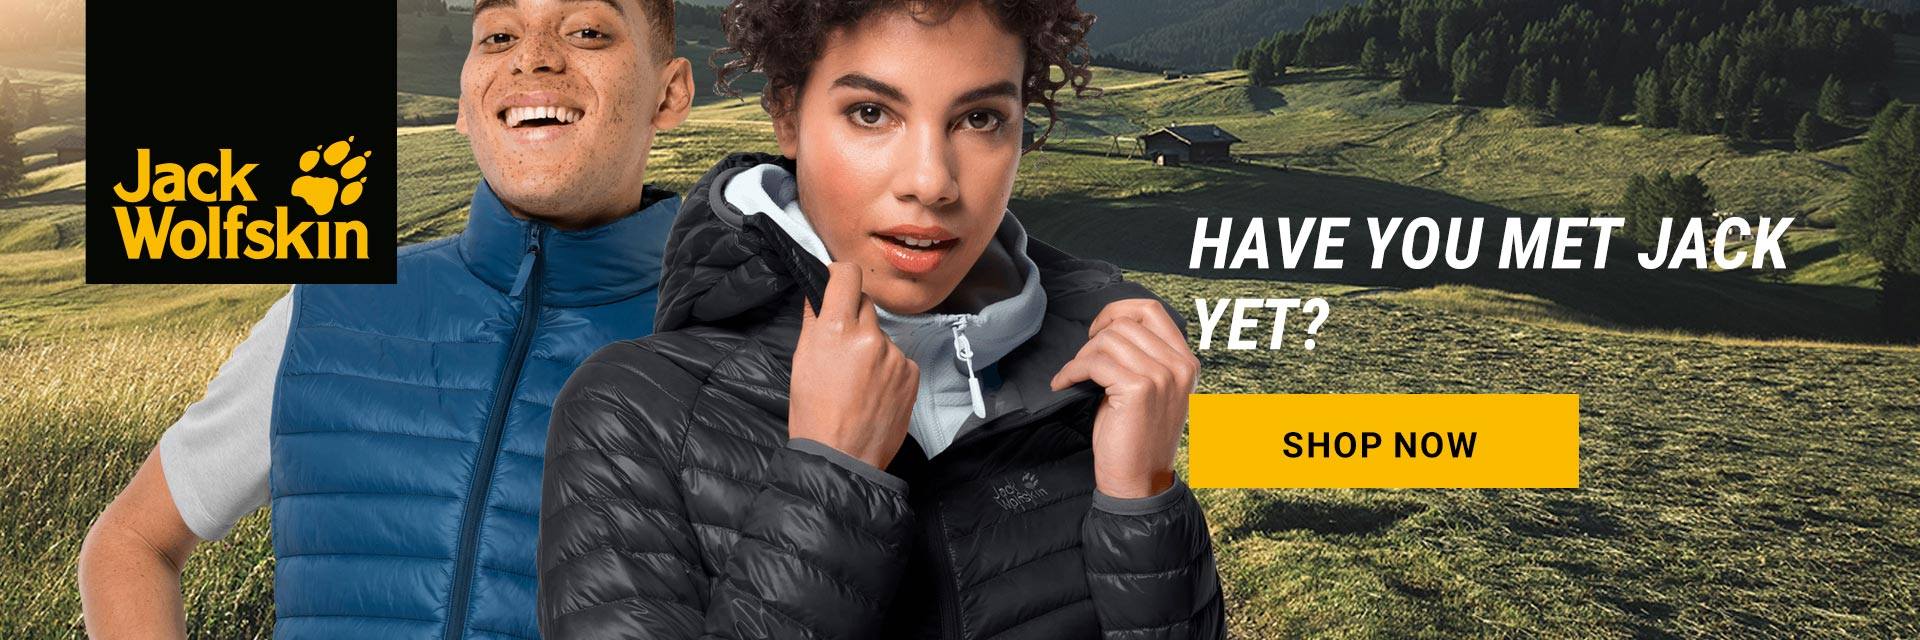 Jack wolfskin now available